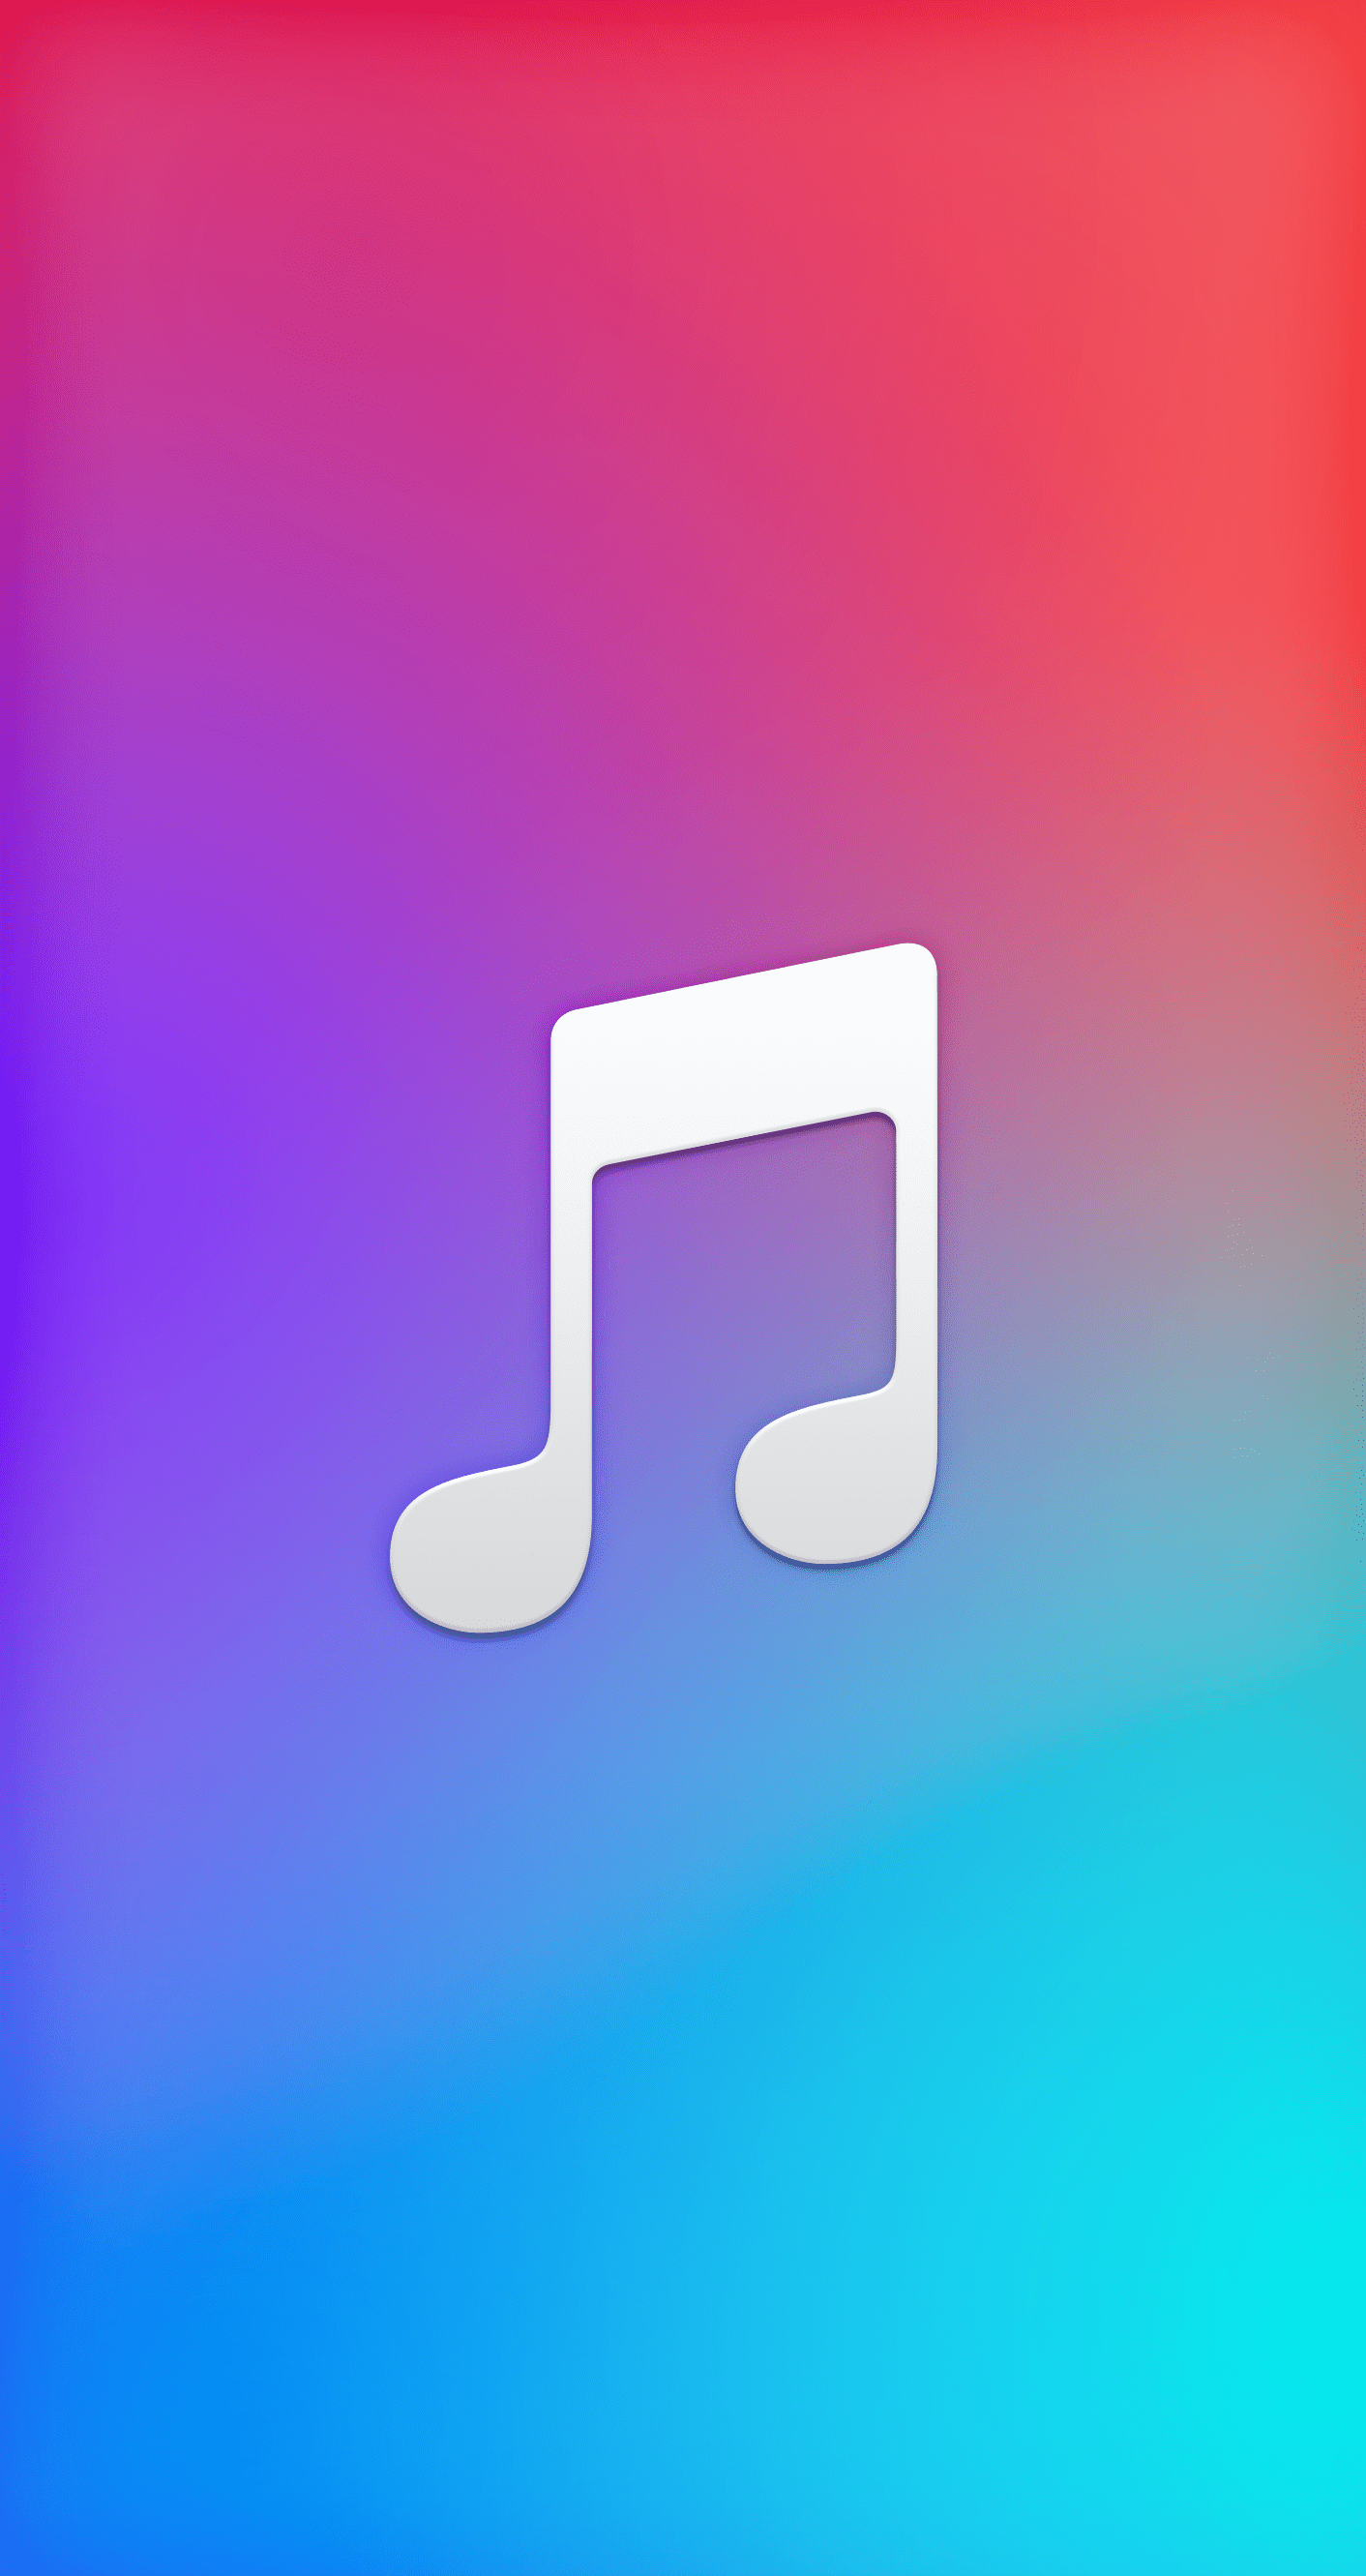 Running Wallpaper Iphone Apple Music Inspired Wallpapers For Ipad Iphone And